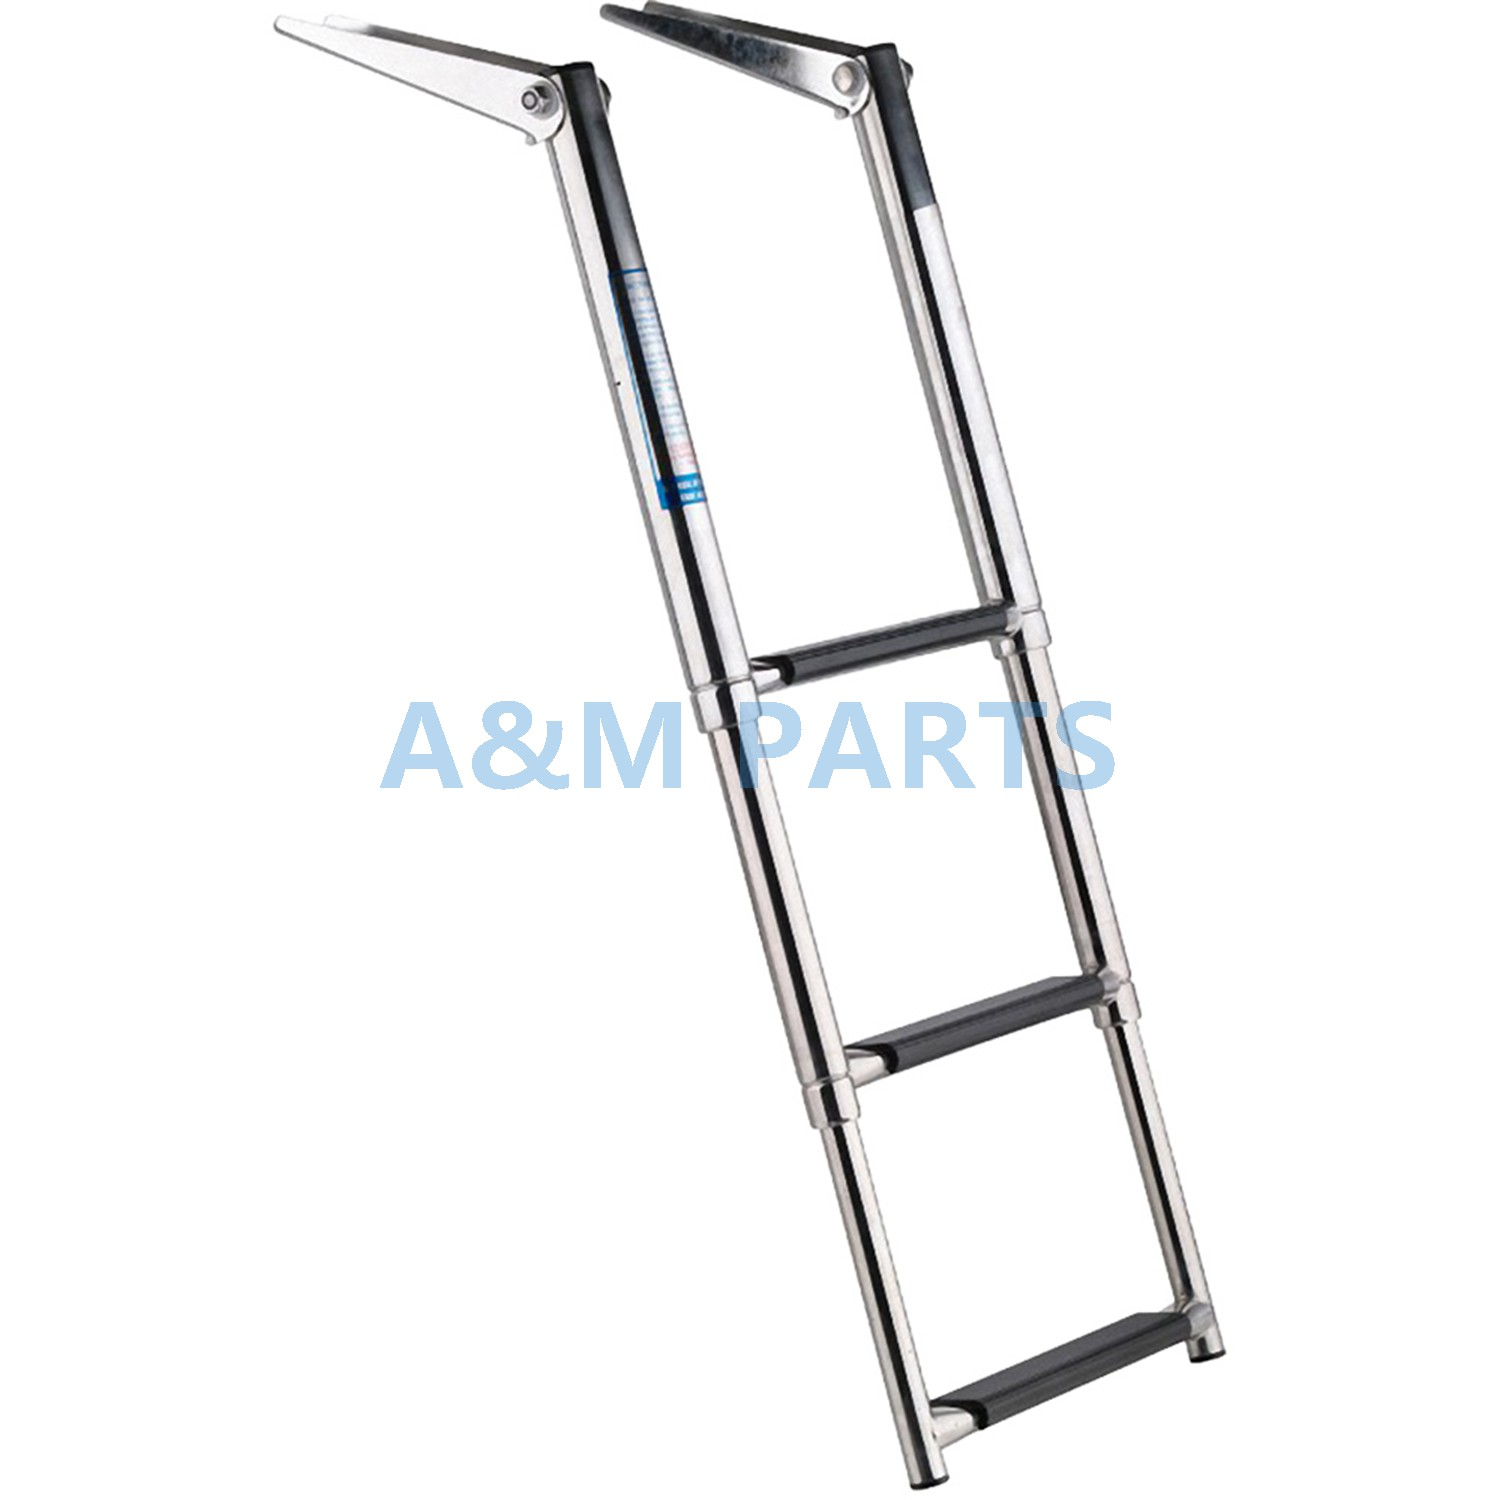 3 Step RIB Ladder Stainless Telescoping Swim Step Rubber Boat Ladder Hot Sale